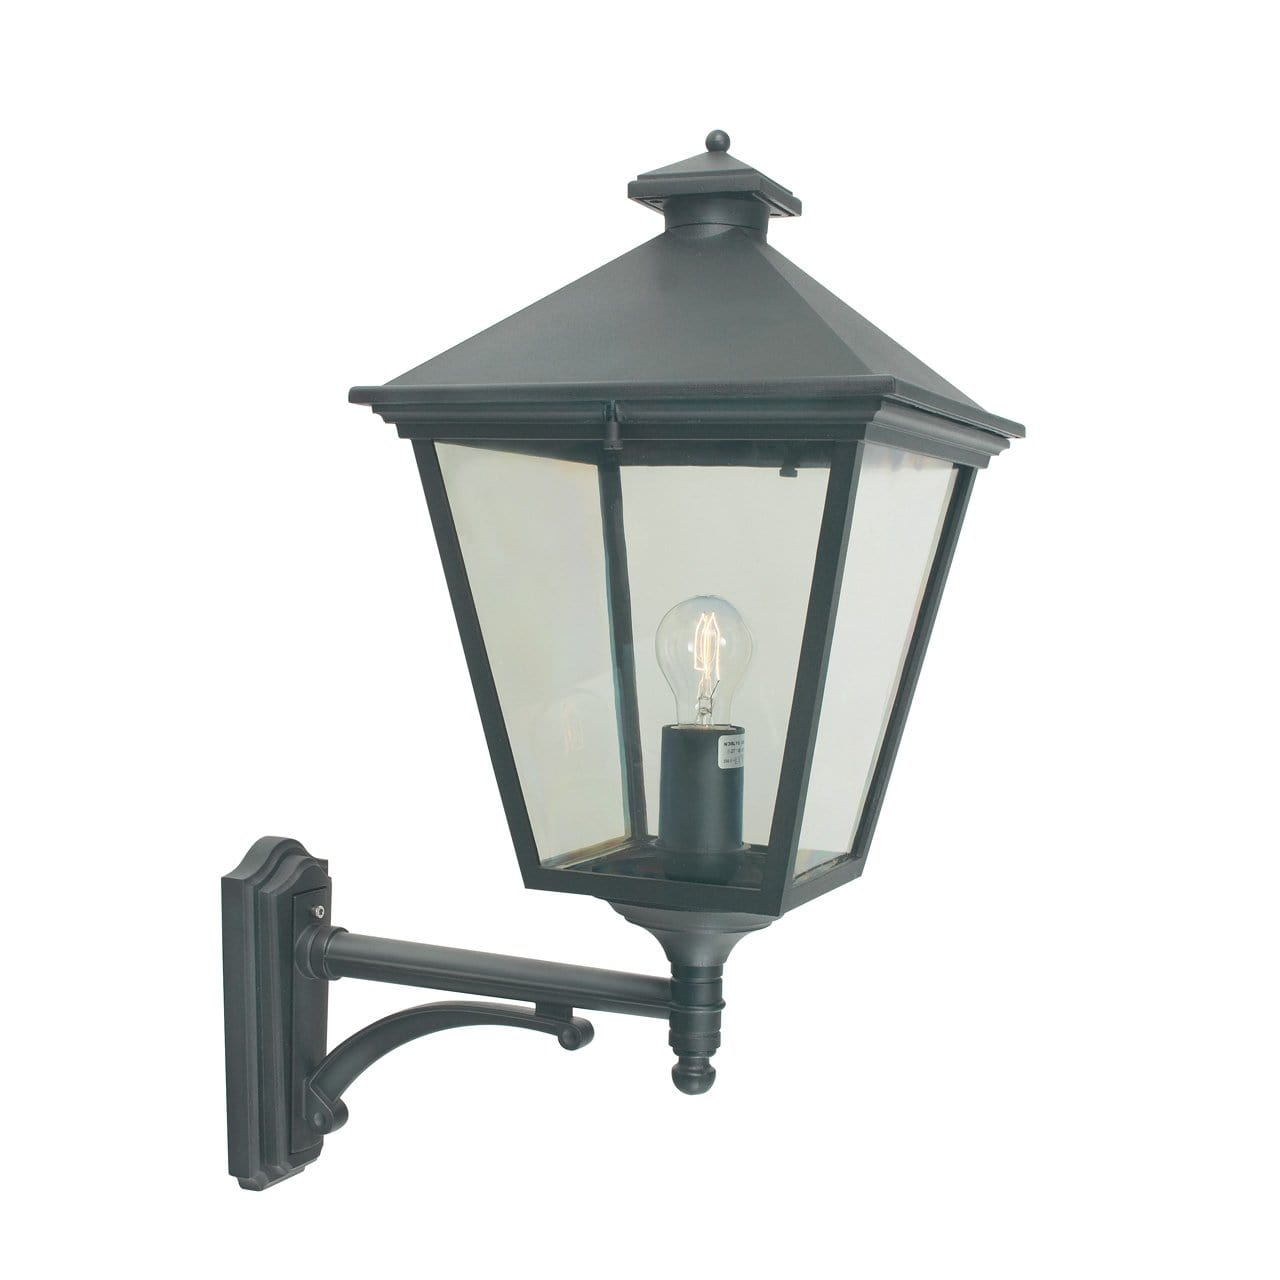 Exterior Wall Light London Up Wall Light